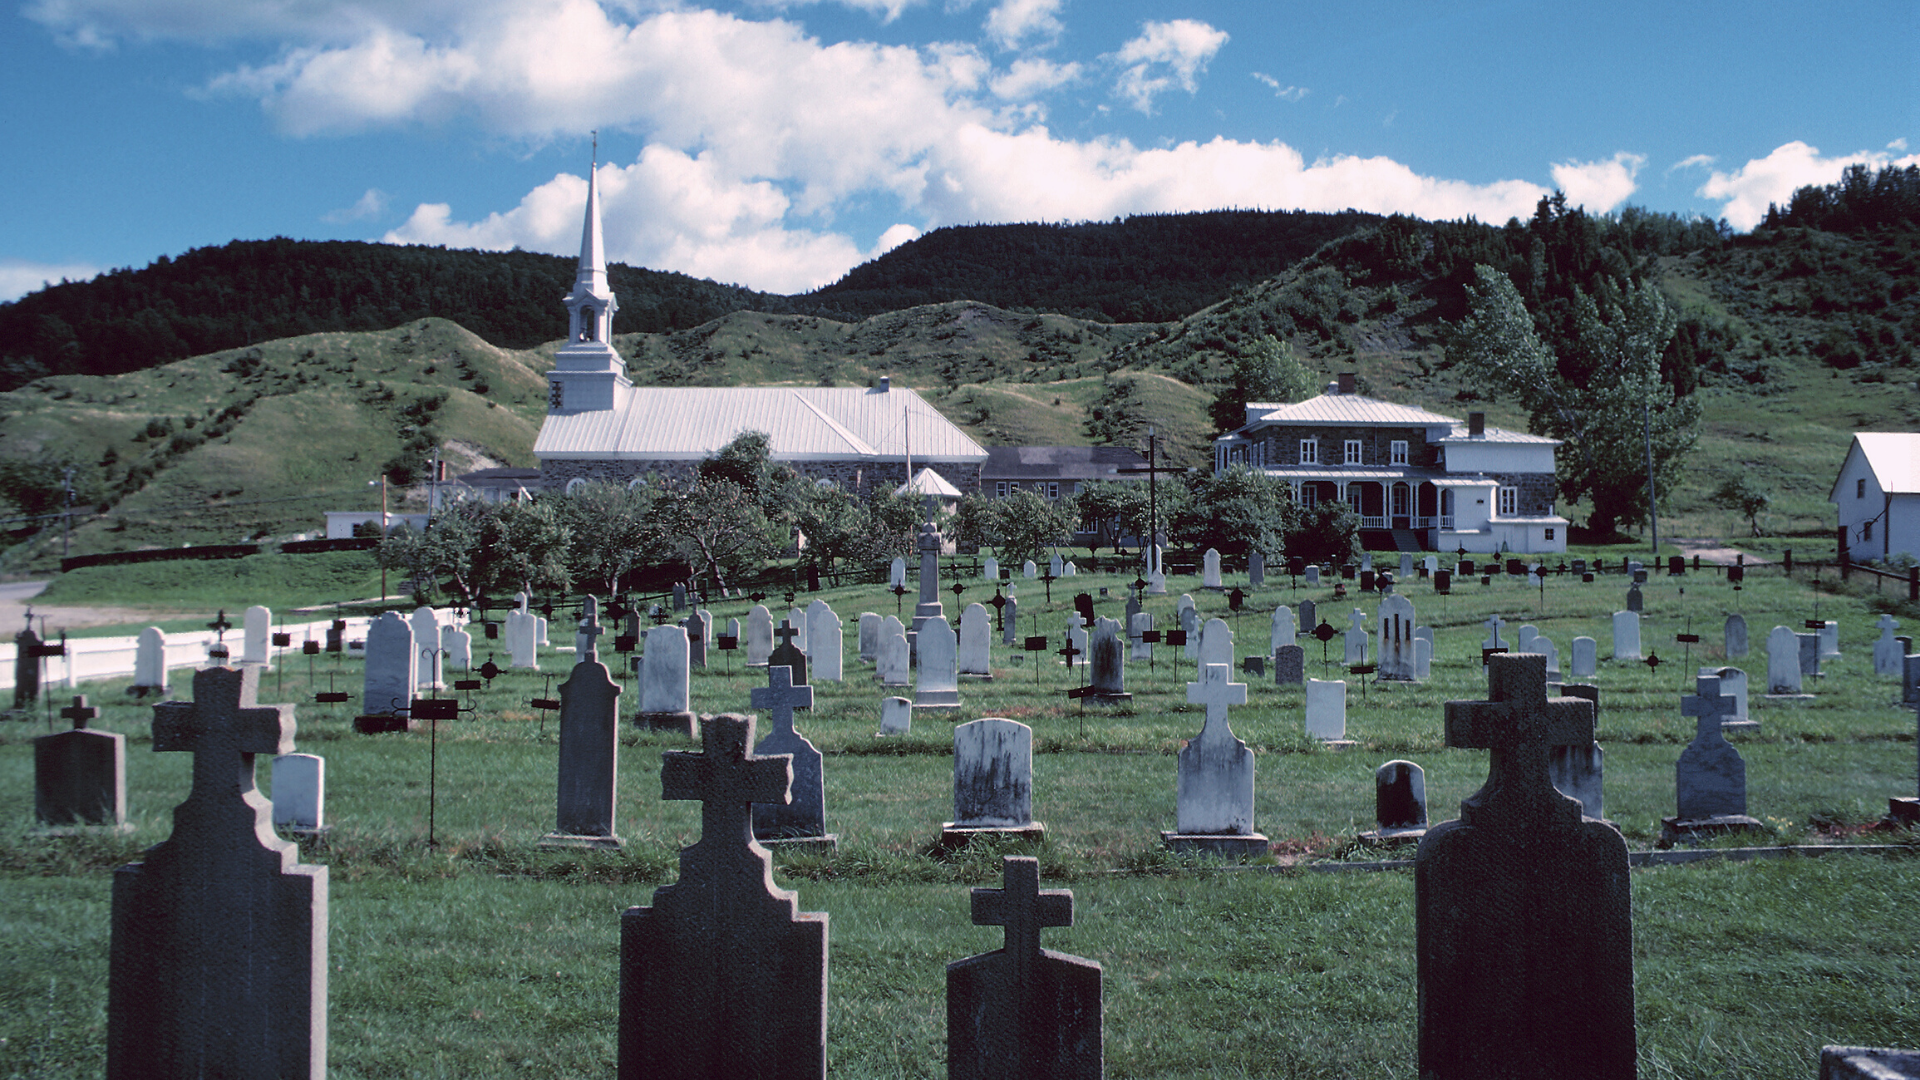 Photo of a Catholic church and cemetery